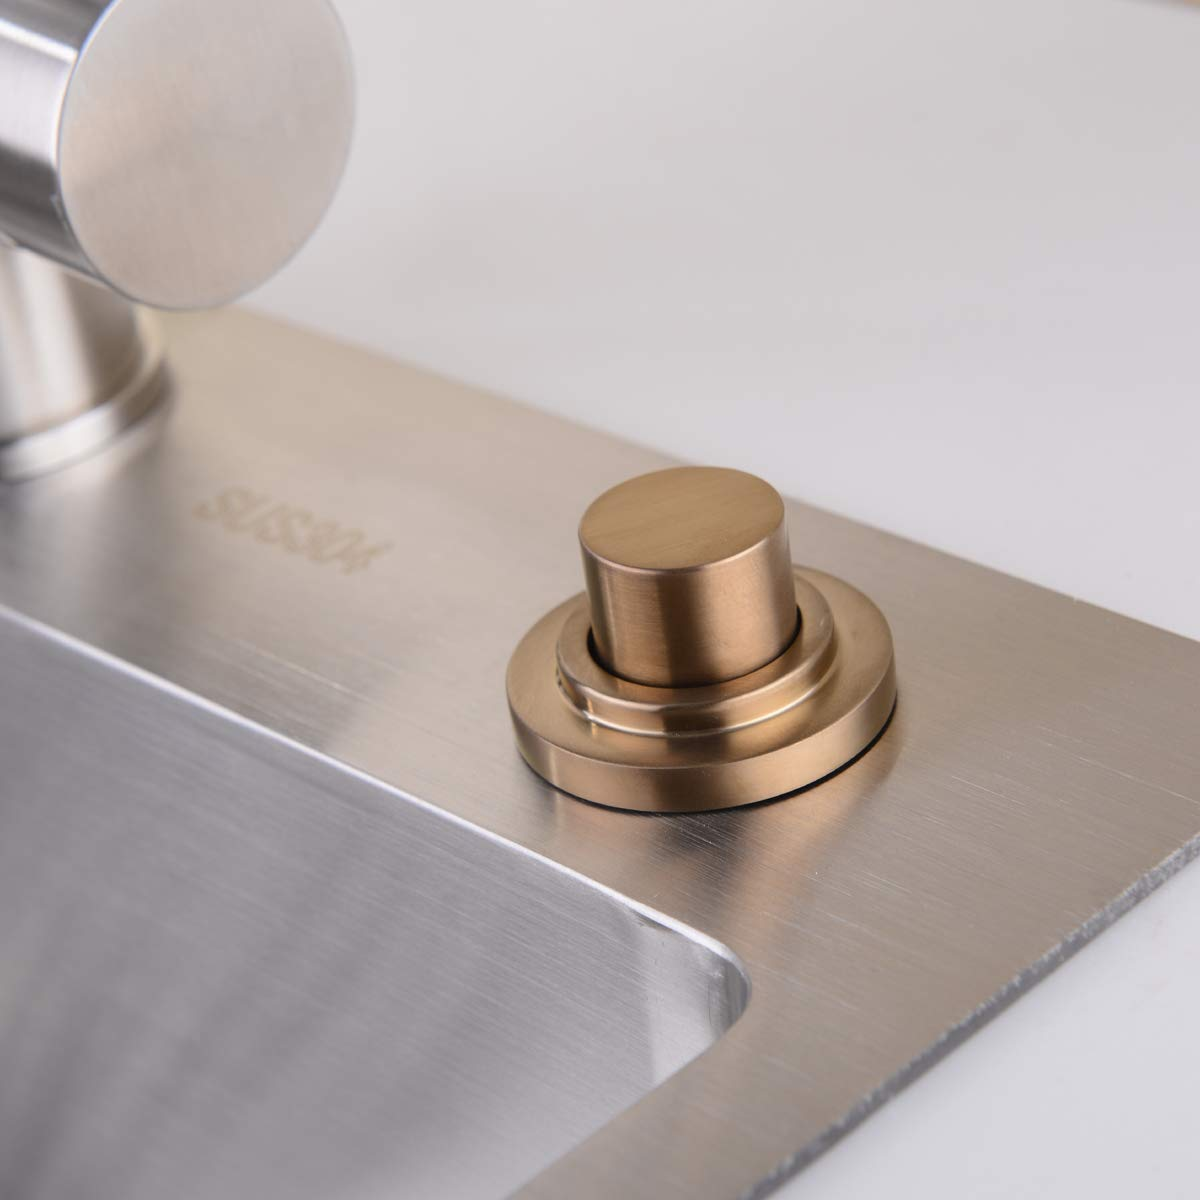 SINKINGDOM SinkTop Air Switch Kit (Full Brass) for Garbage Disposal, Cordless (Champagne Bronze) by SINKINGDOM (Image #5)